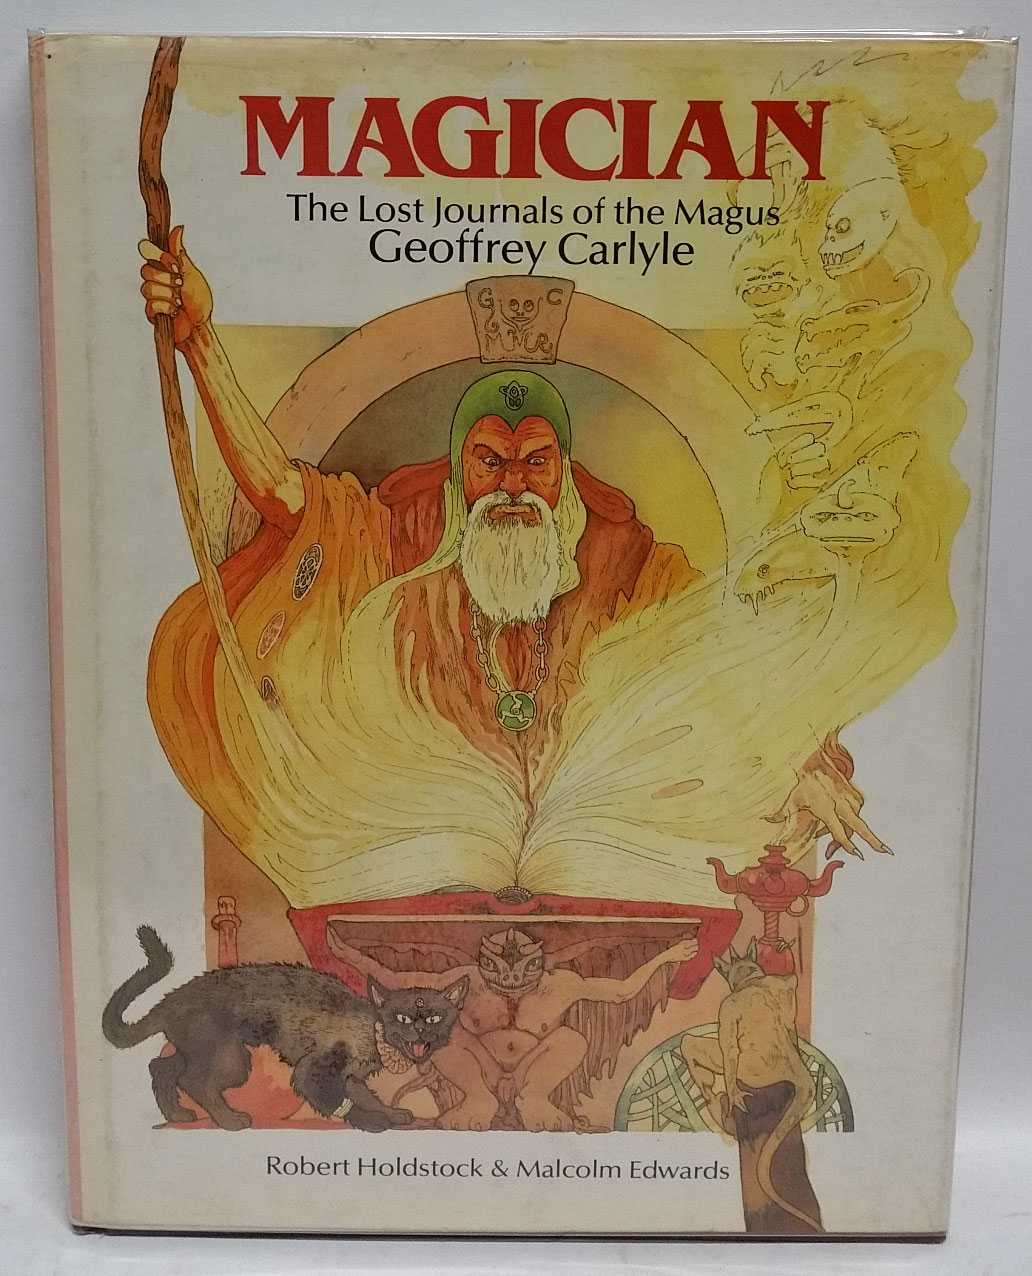 Magician: The Lost Journals of the Magus Geoffrey Carlyle, Robert Holdstock; Malcolm Edwards